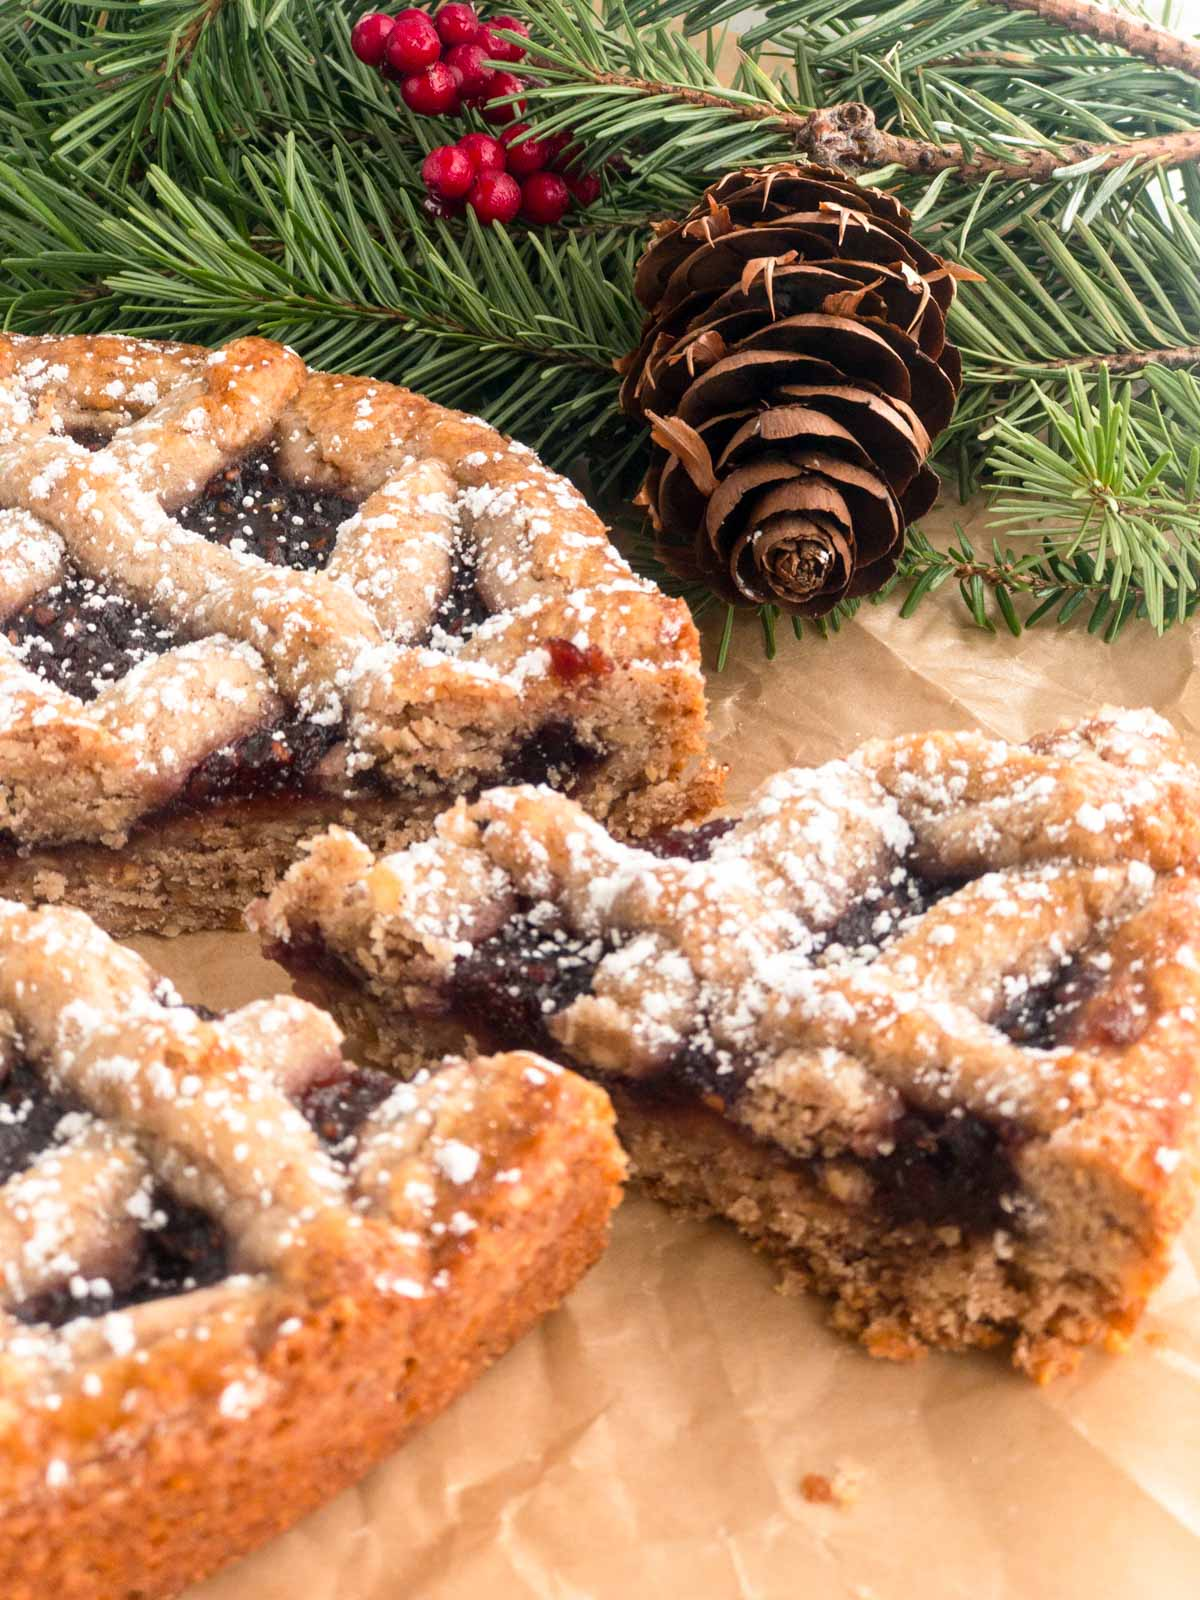 Linzer torte on brown parchment with pine cone and pine branch